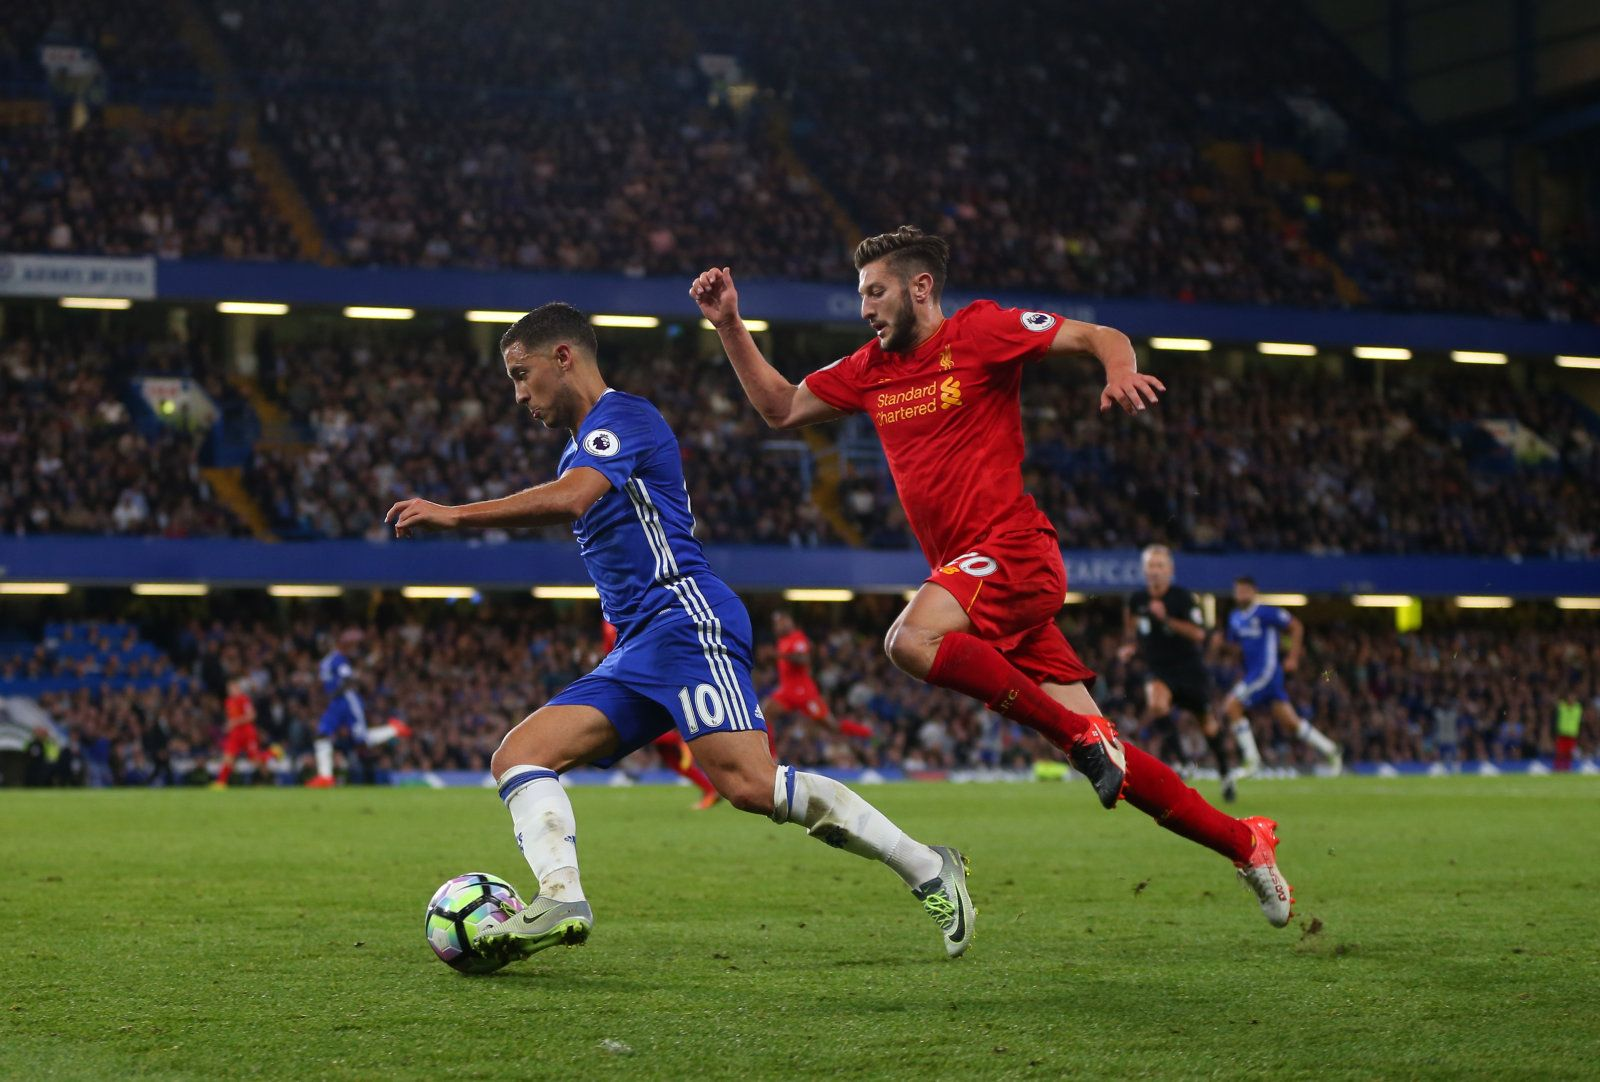 Watch today's Chelsea vs Liverpool game in 4K and Dolby